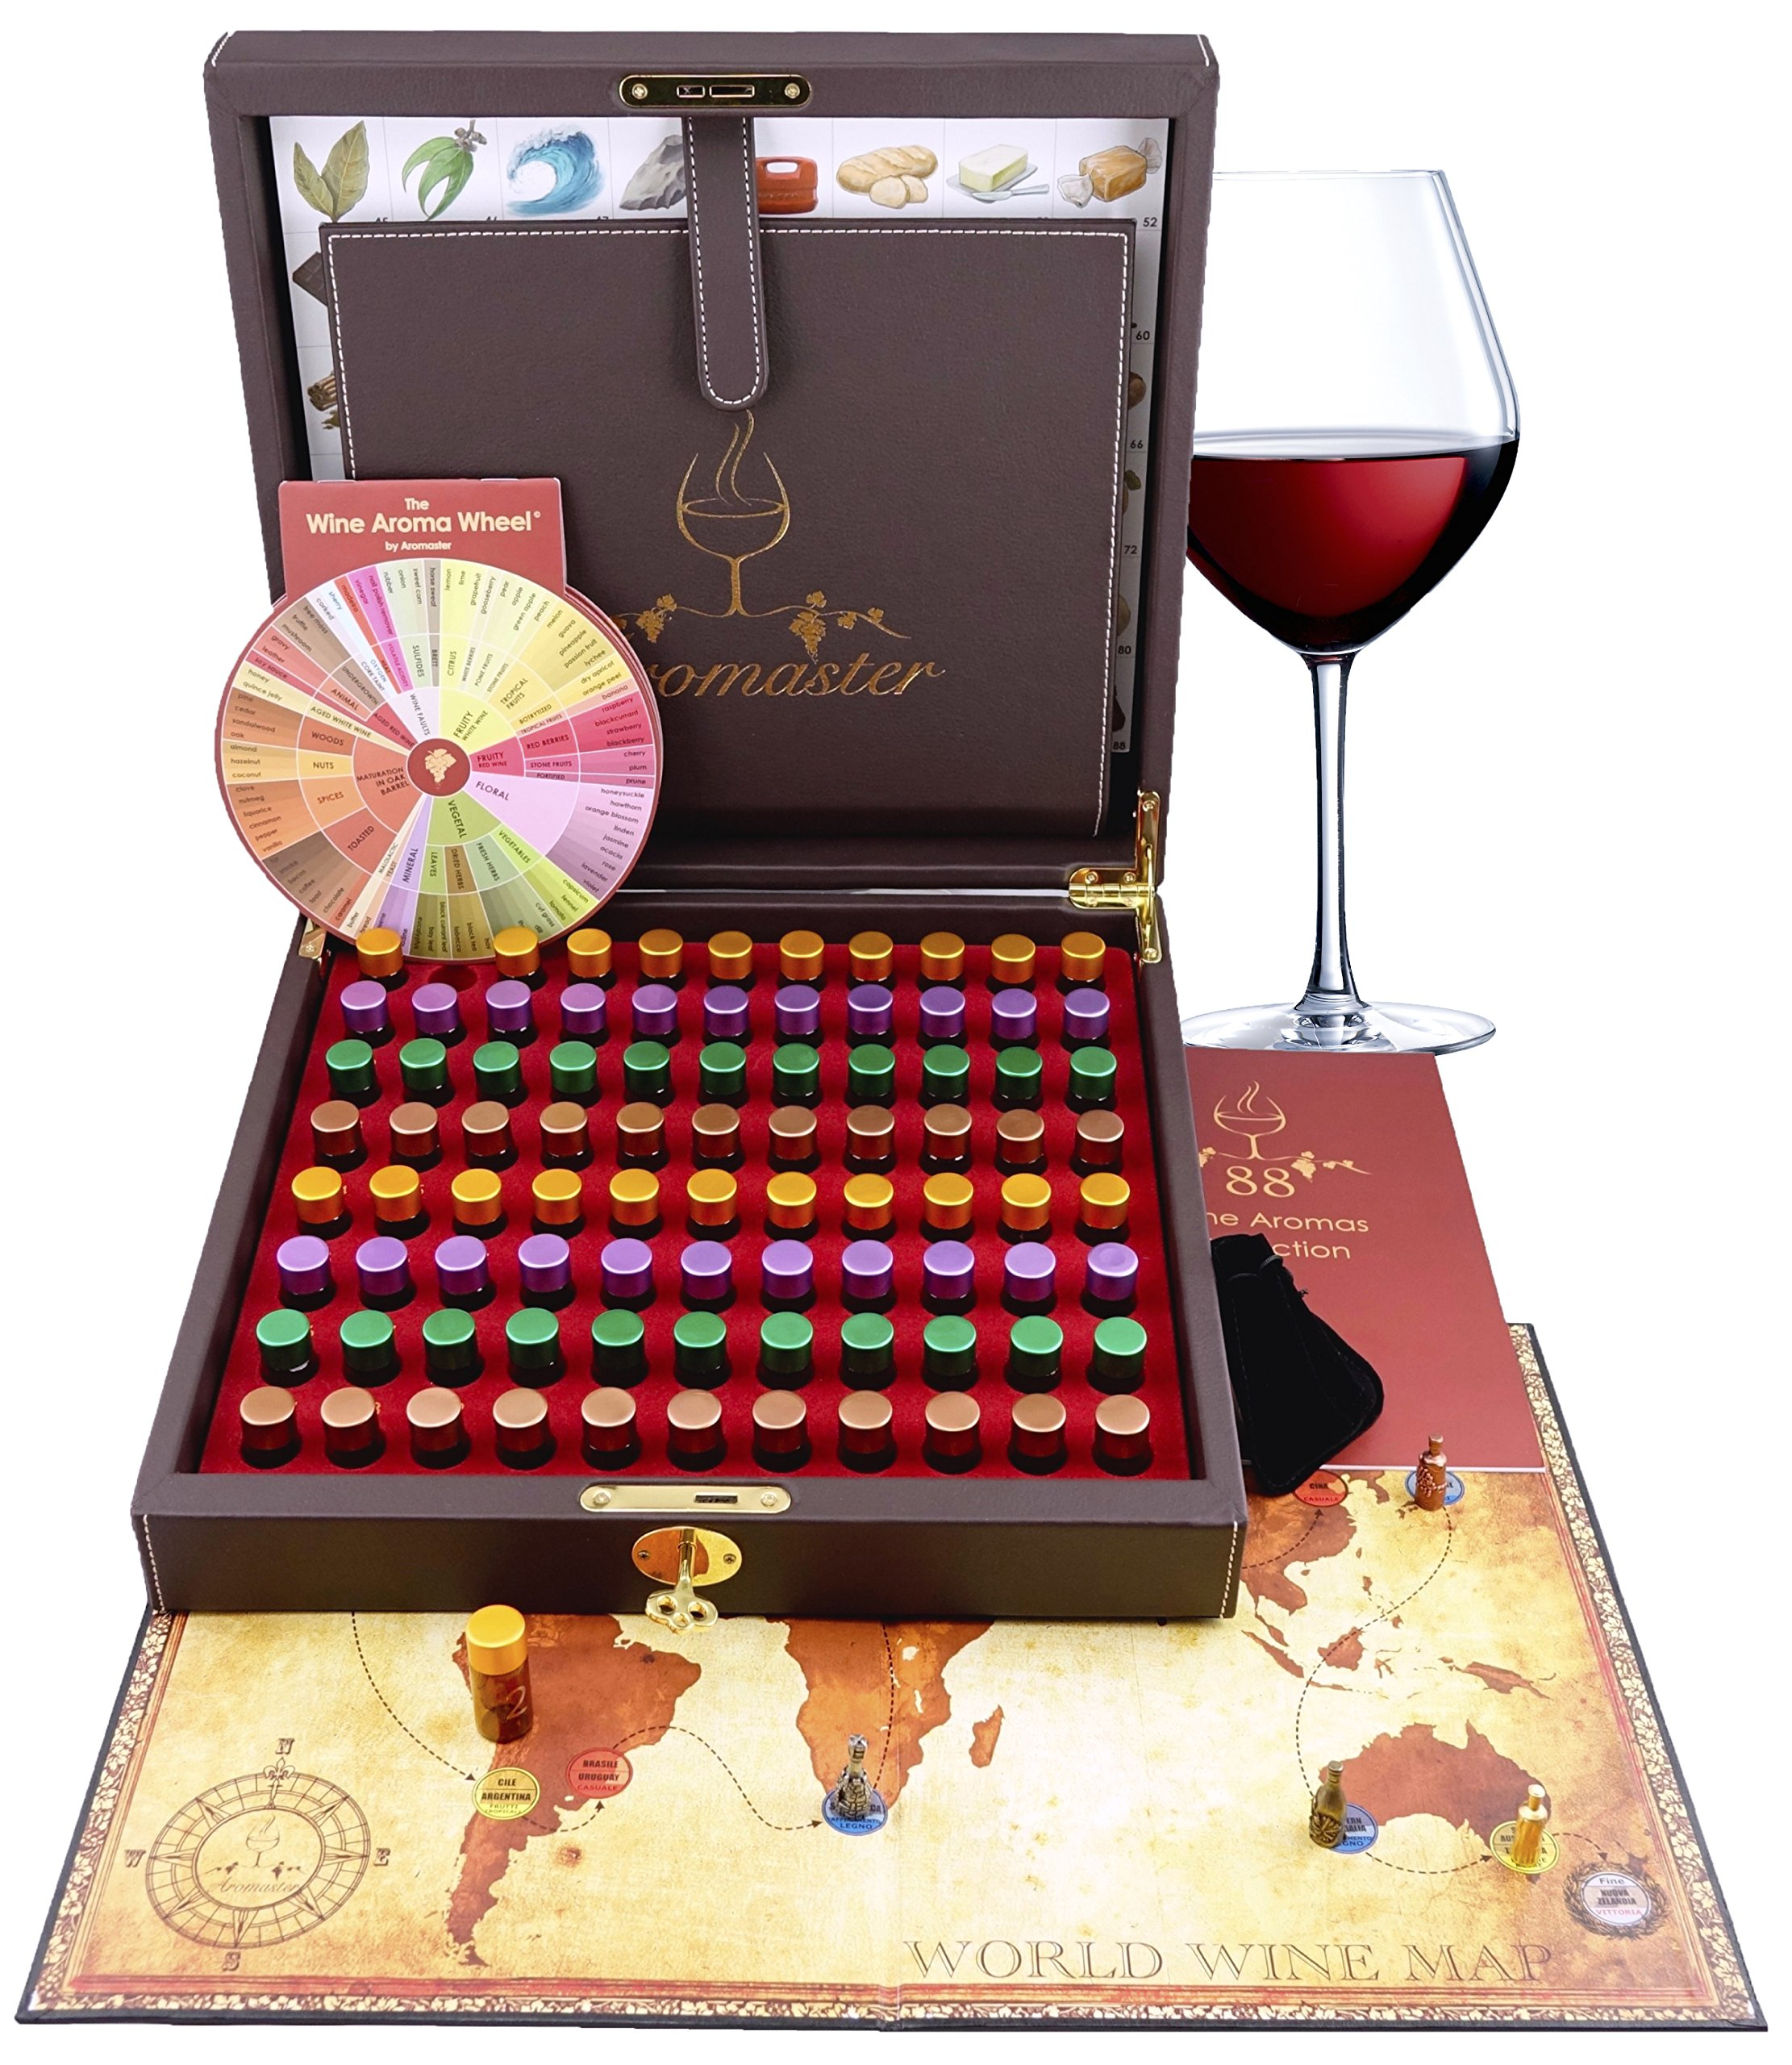 Master Wine Aromas Tasting Kit - 88 Wine Aromas (wine game & wine aroma wheel included)